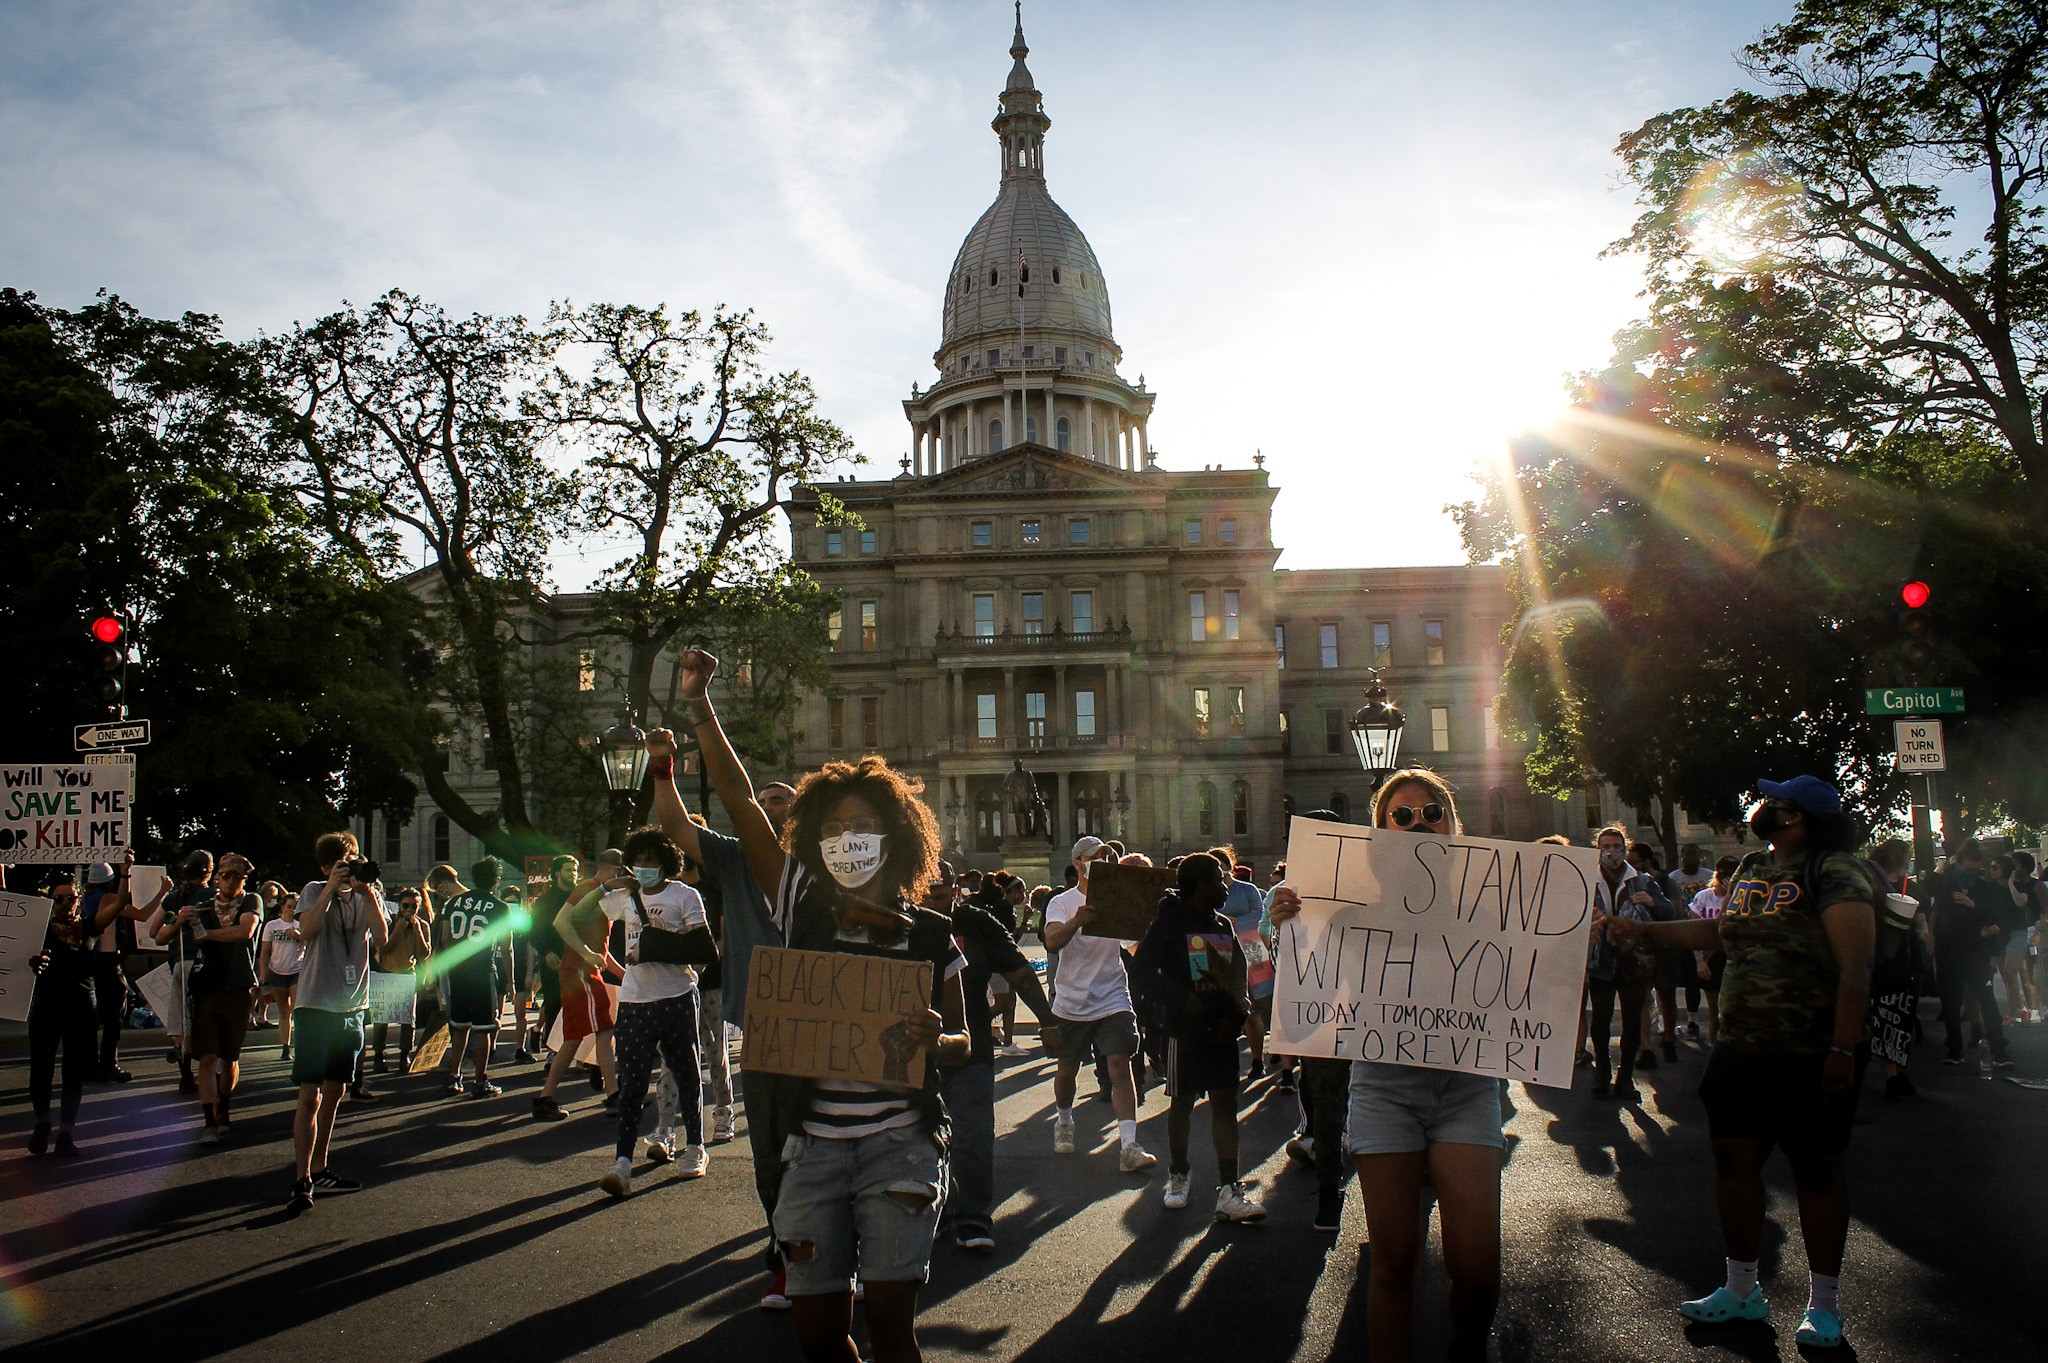 Protesters in Lansing marched in front of the Michigan Capitol Building on June 3, 2020.{ } (WWMT/Mikenzie Frost)